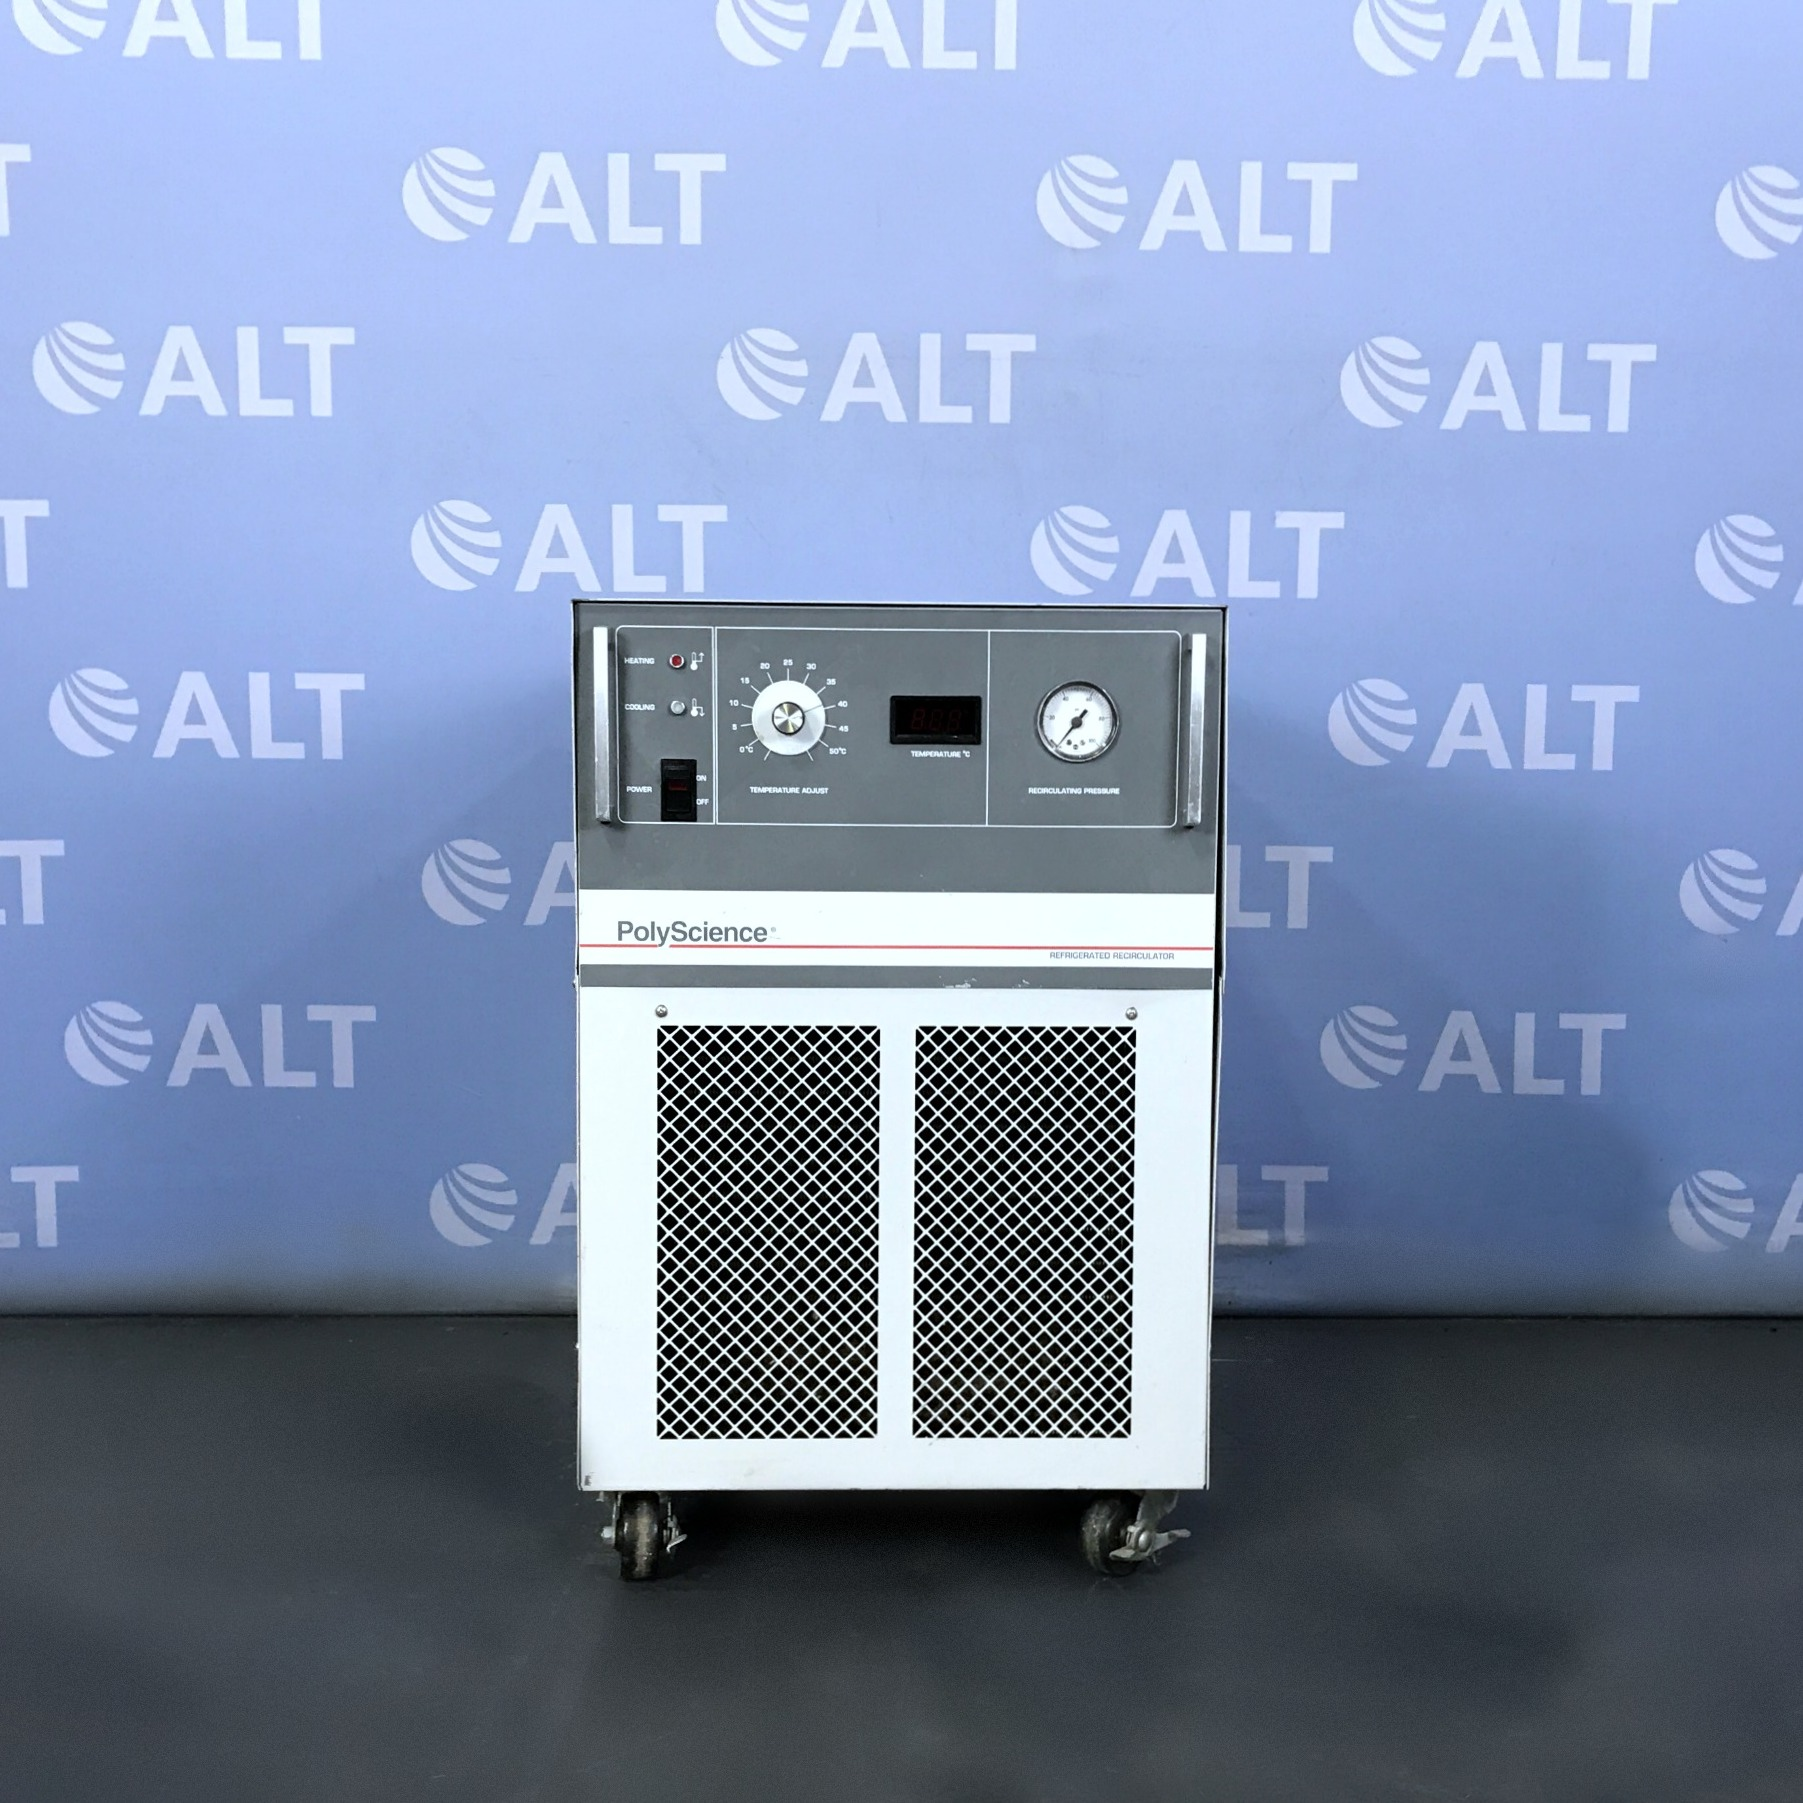 PolyScience Model 675 Refrigerated Recirculator Image